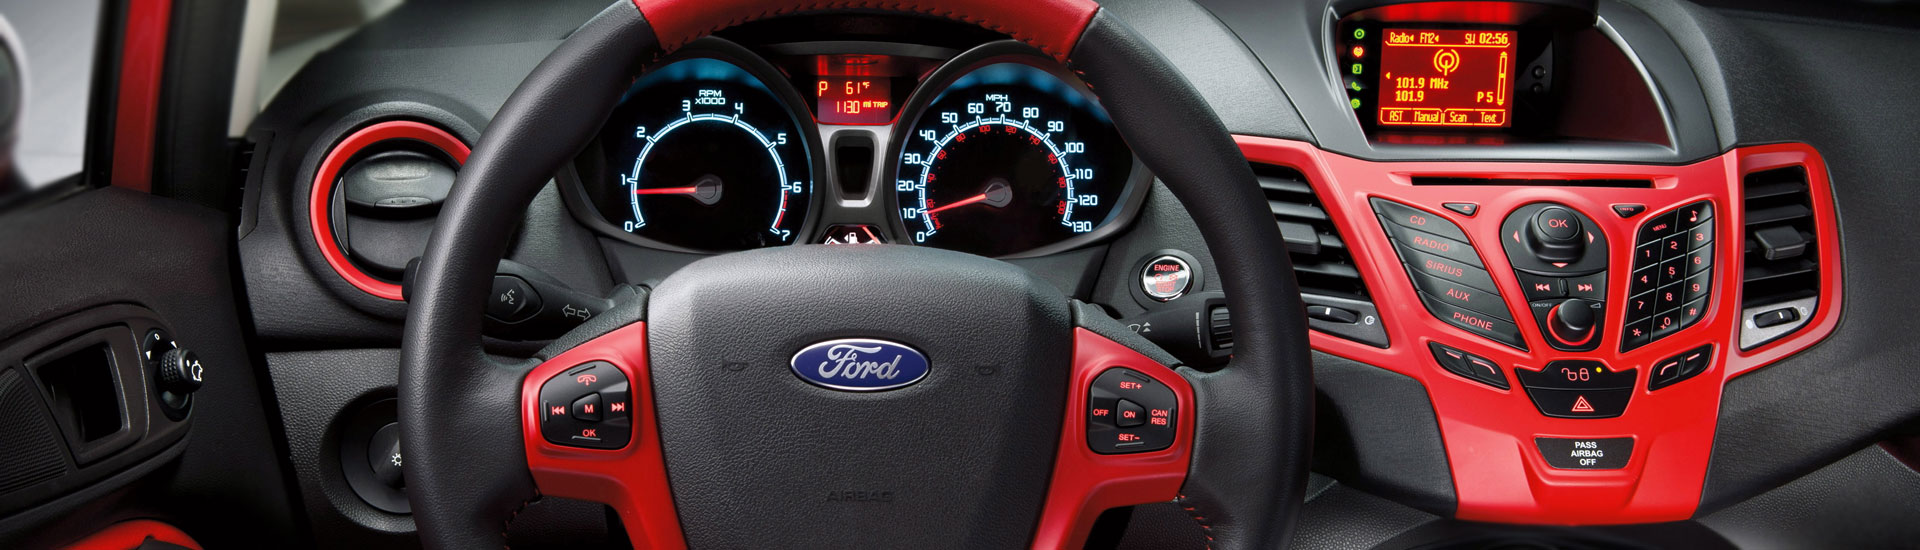 2016 Ford Taurus Custom Dash Kits